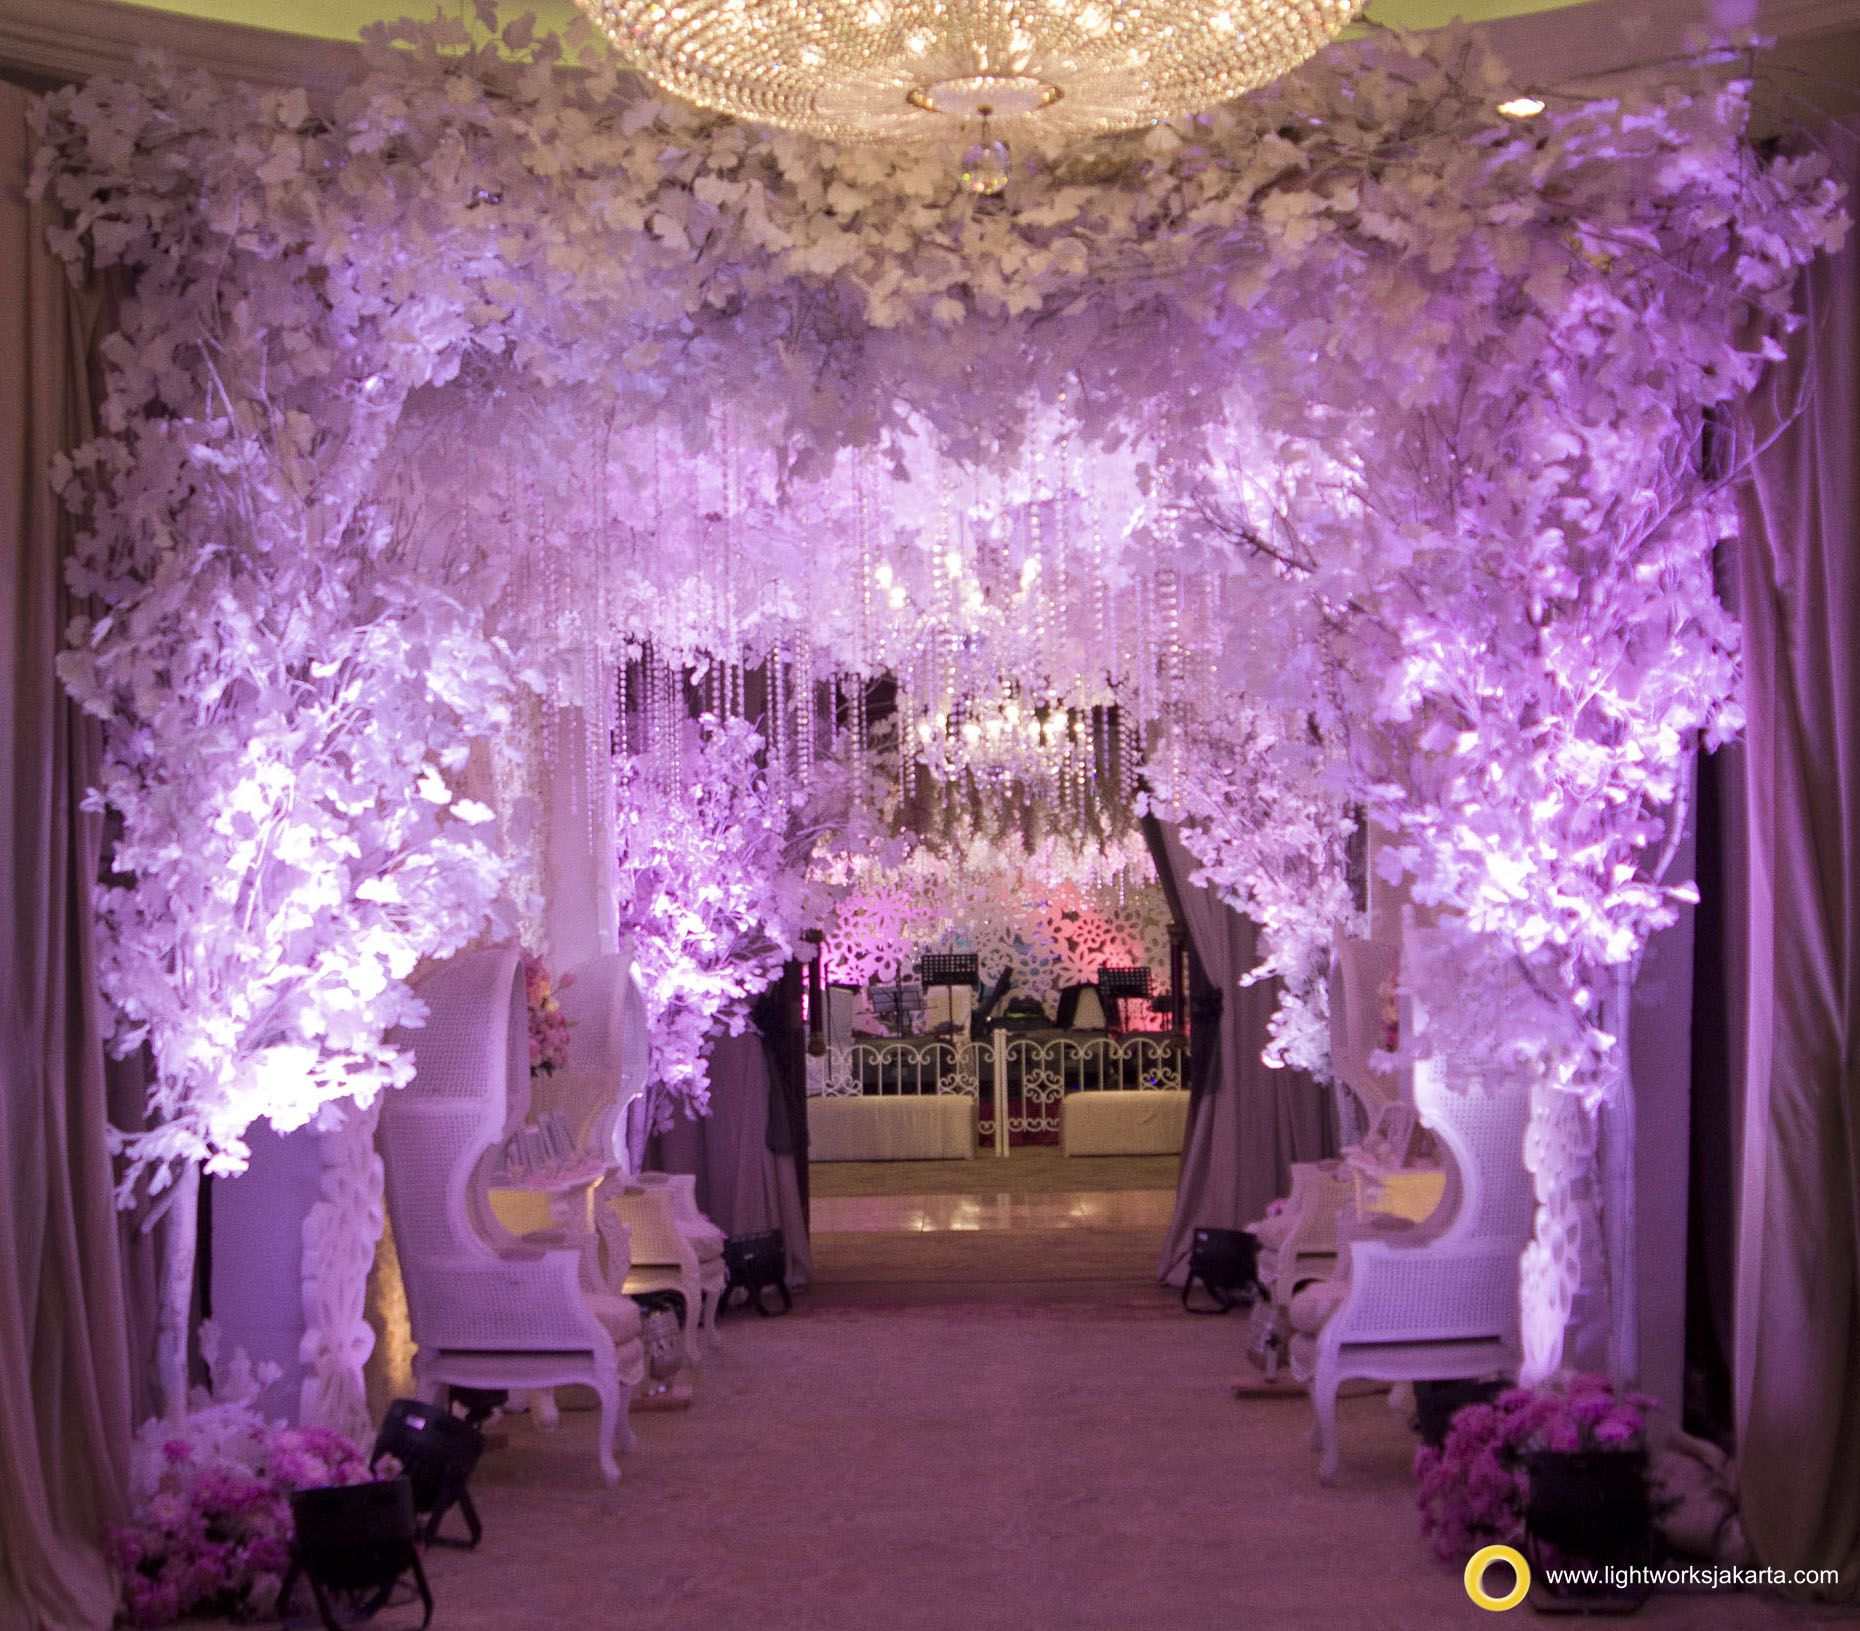 andhika and clara's wedding reception; venue at shangri-la hotel